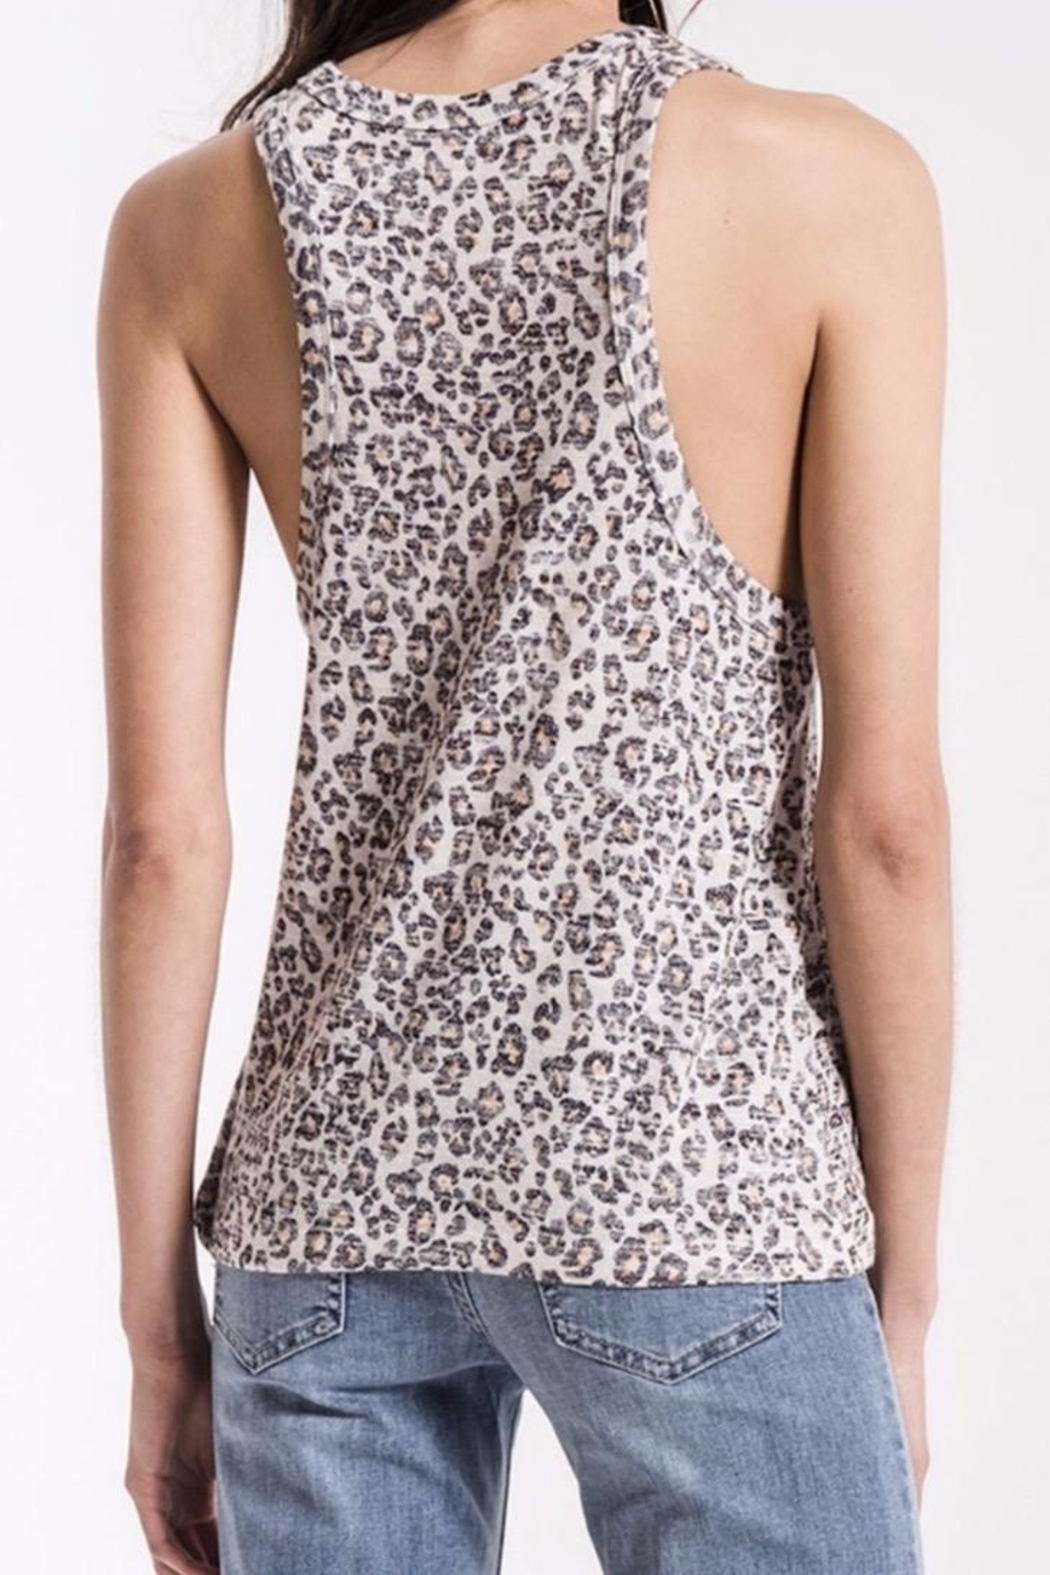 z supply Soft Leopard Tank - Front Full Image